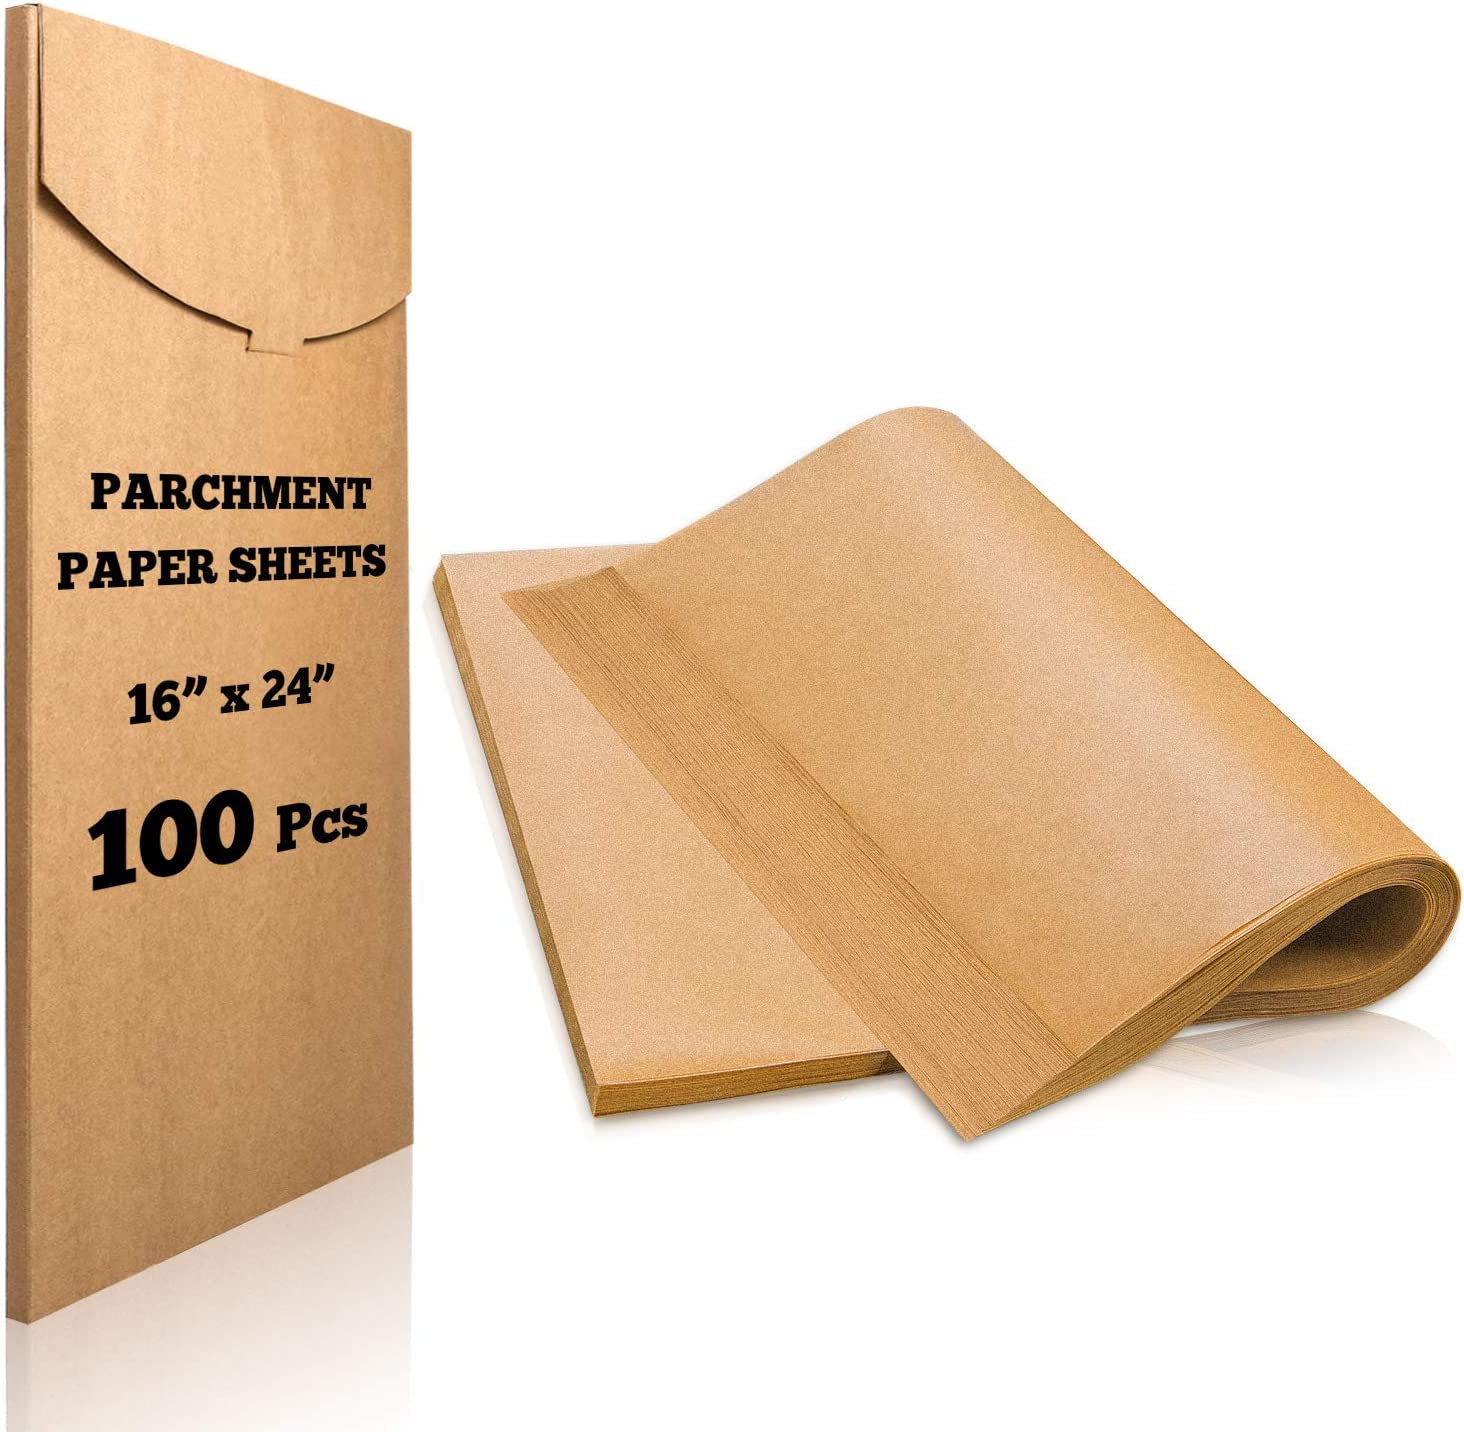 Hiware 100 Pieces Parchment Paper Sheets 16x24 Inches, Precut Non-Stick Parchment Sheets for Baking, Cooking, Grilling, Frying and Steaming - Unbleached, Fit for Full Size Pans